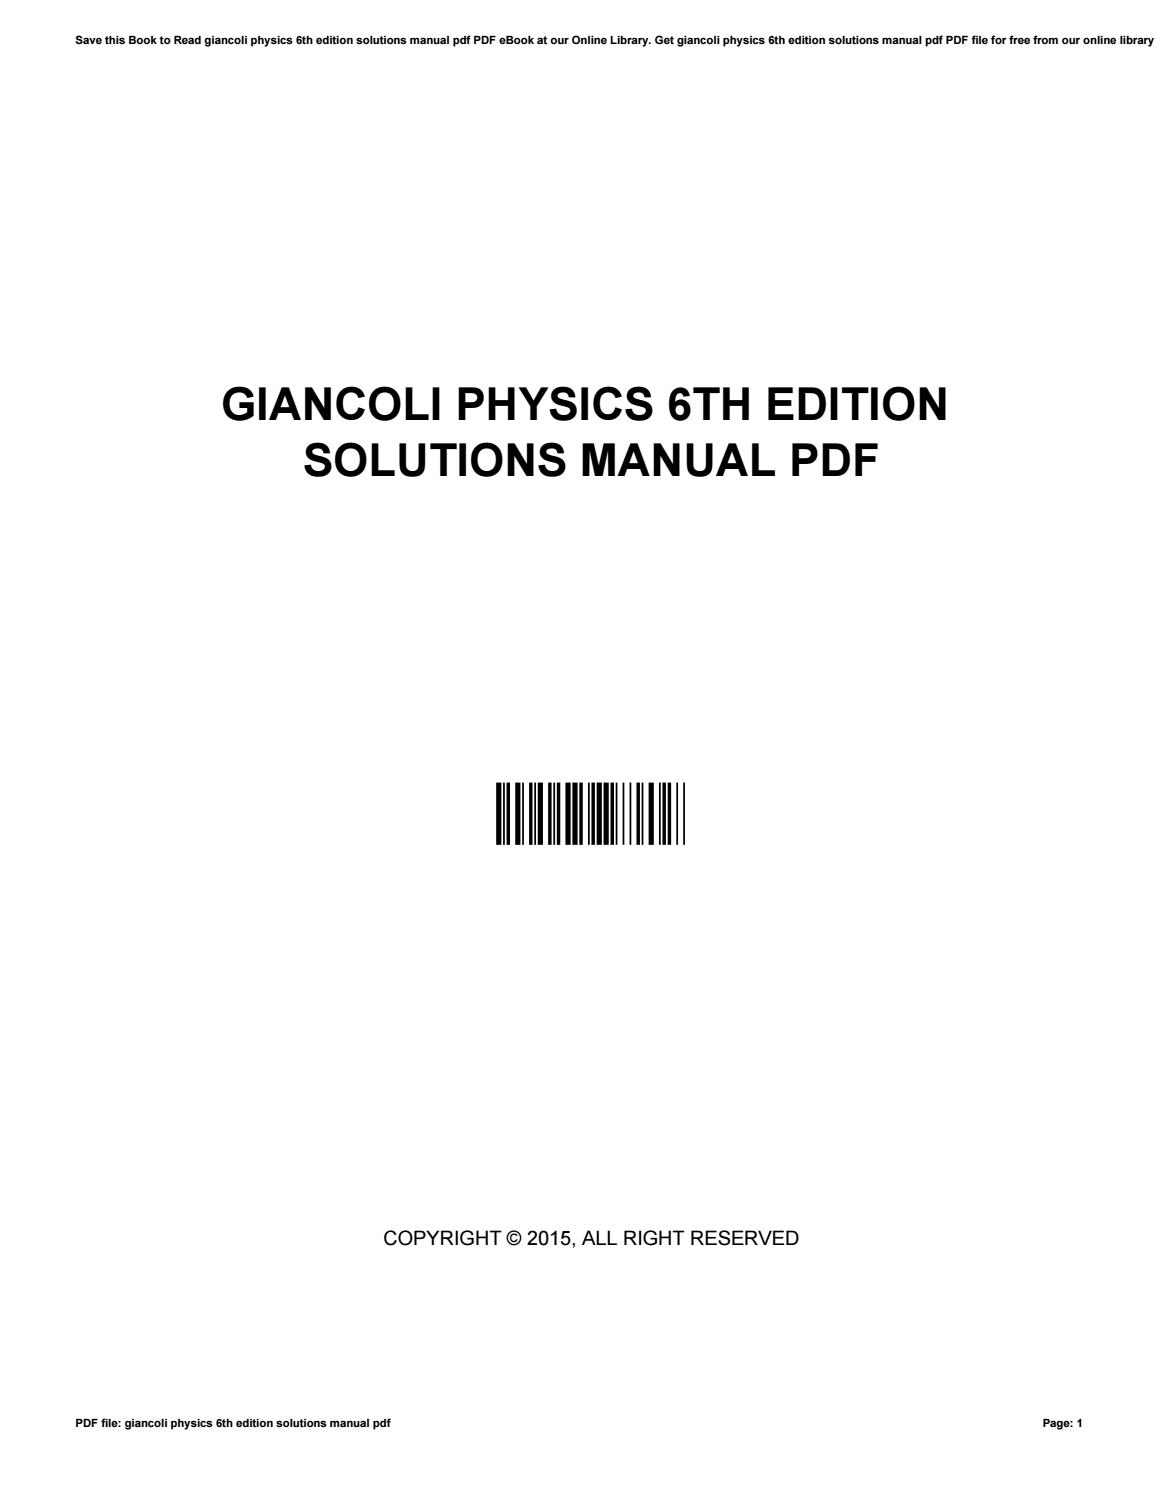 Giancoli Physics 6th Edition Pdf